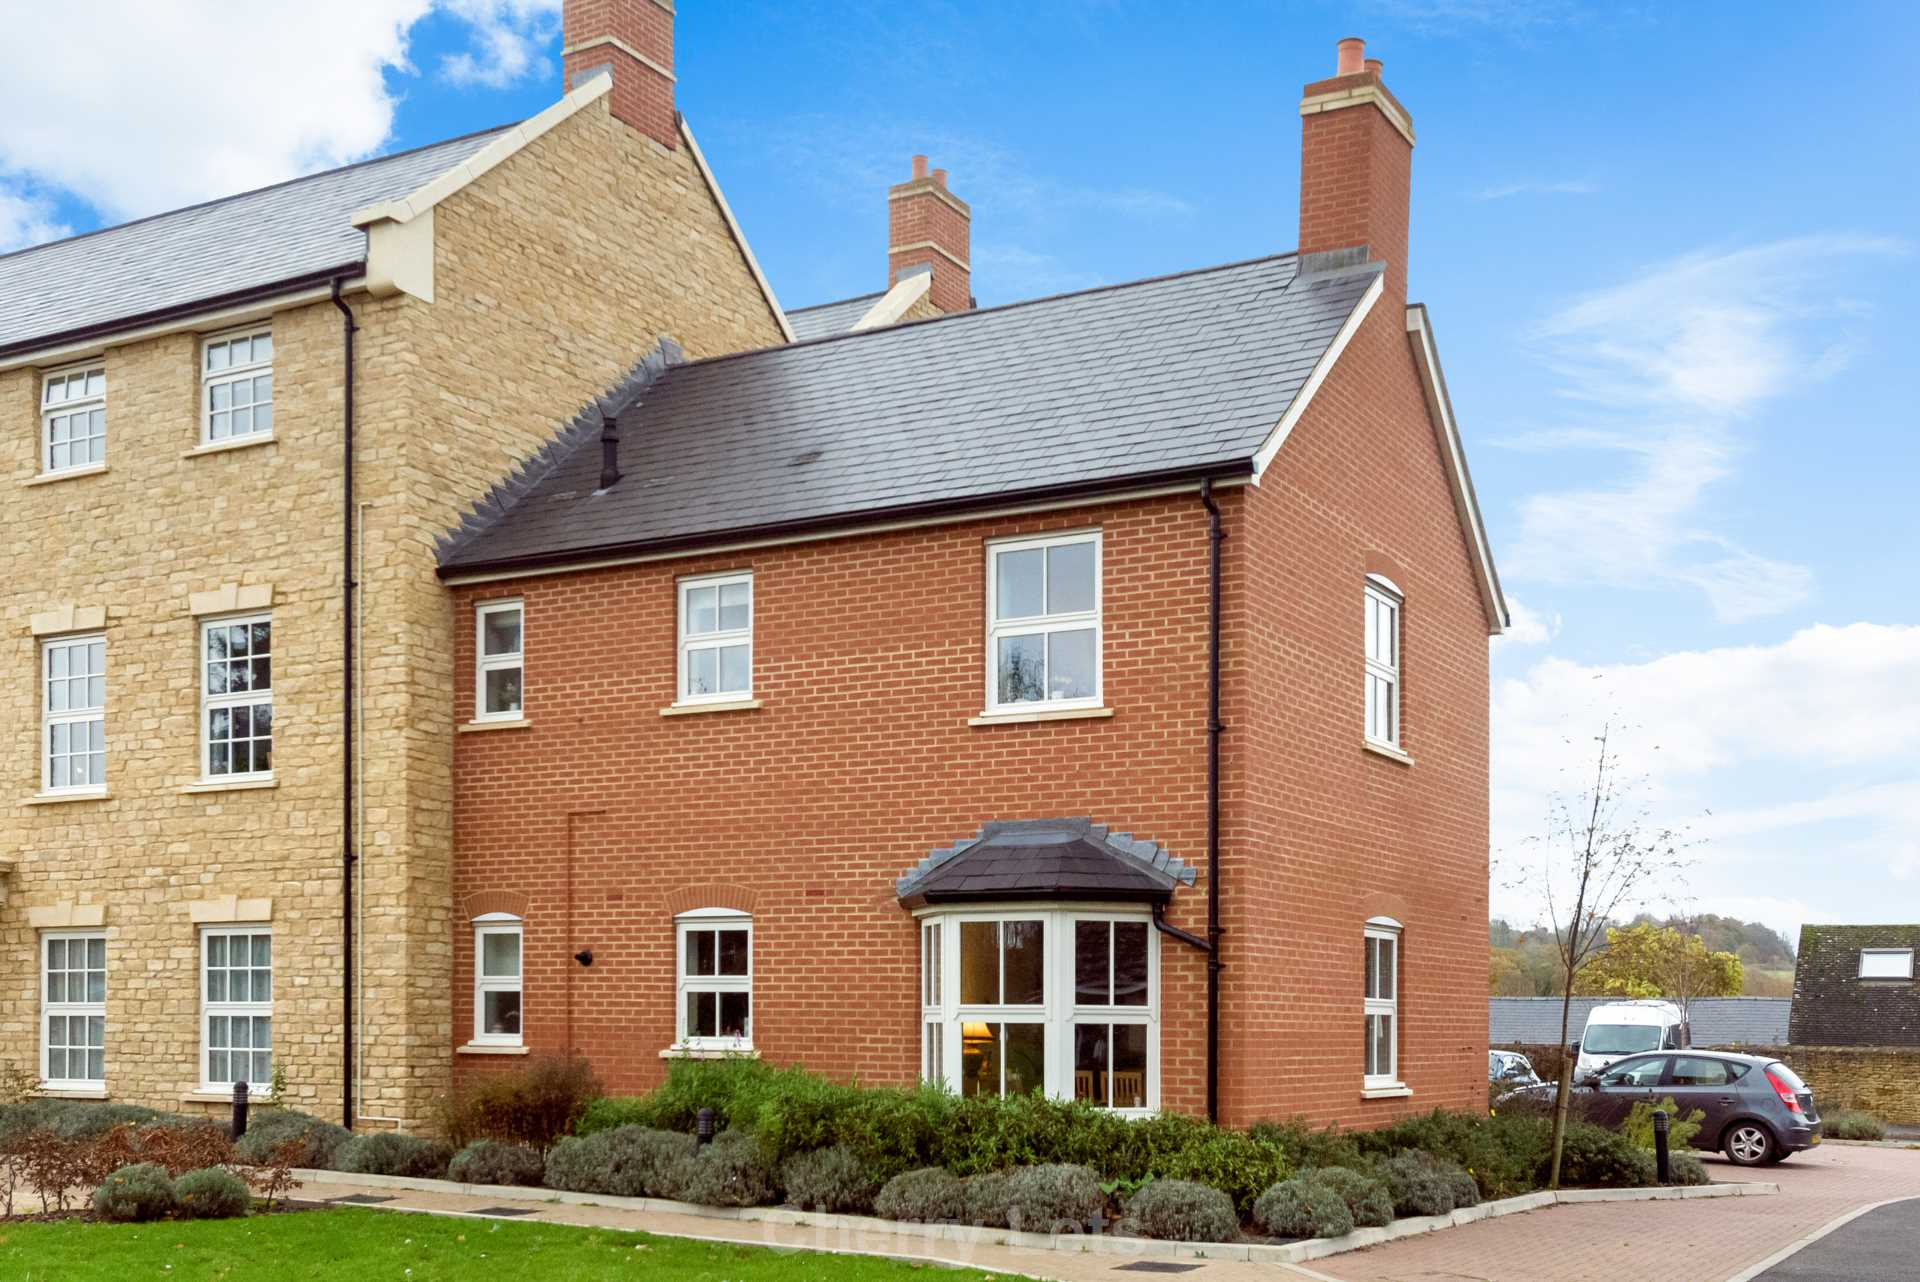 2 bed apartment to rent in Astrop Grange, Kings Sutton, OX17  - Property Image 15